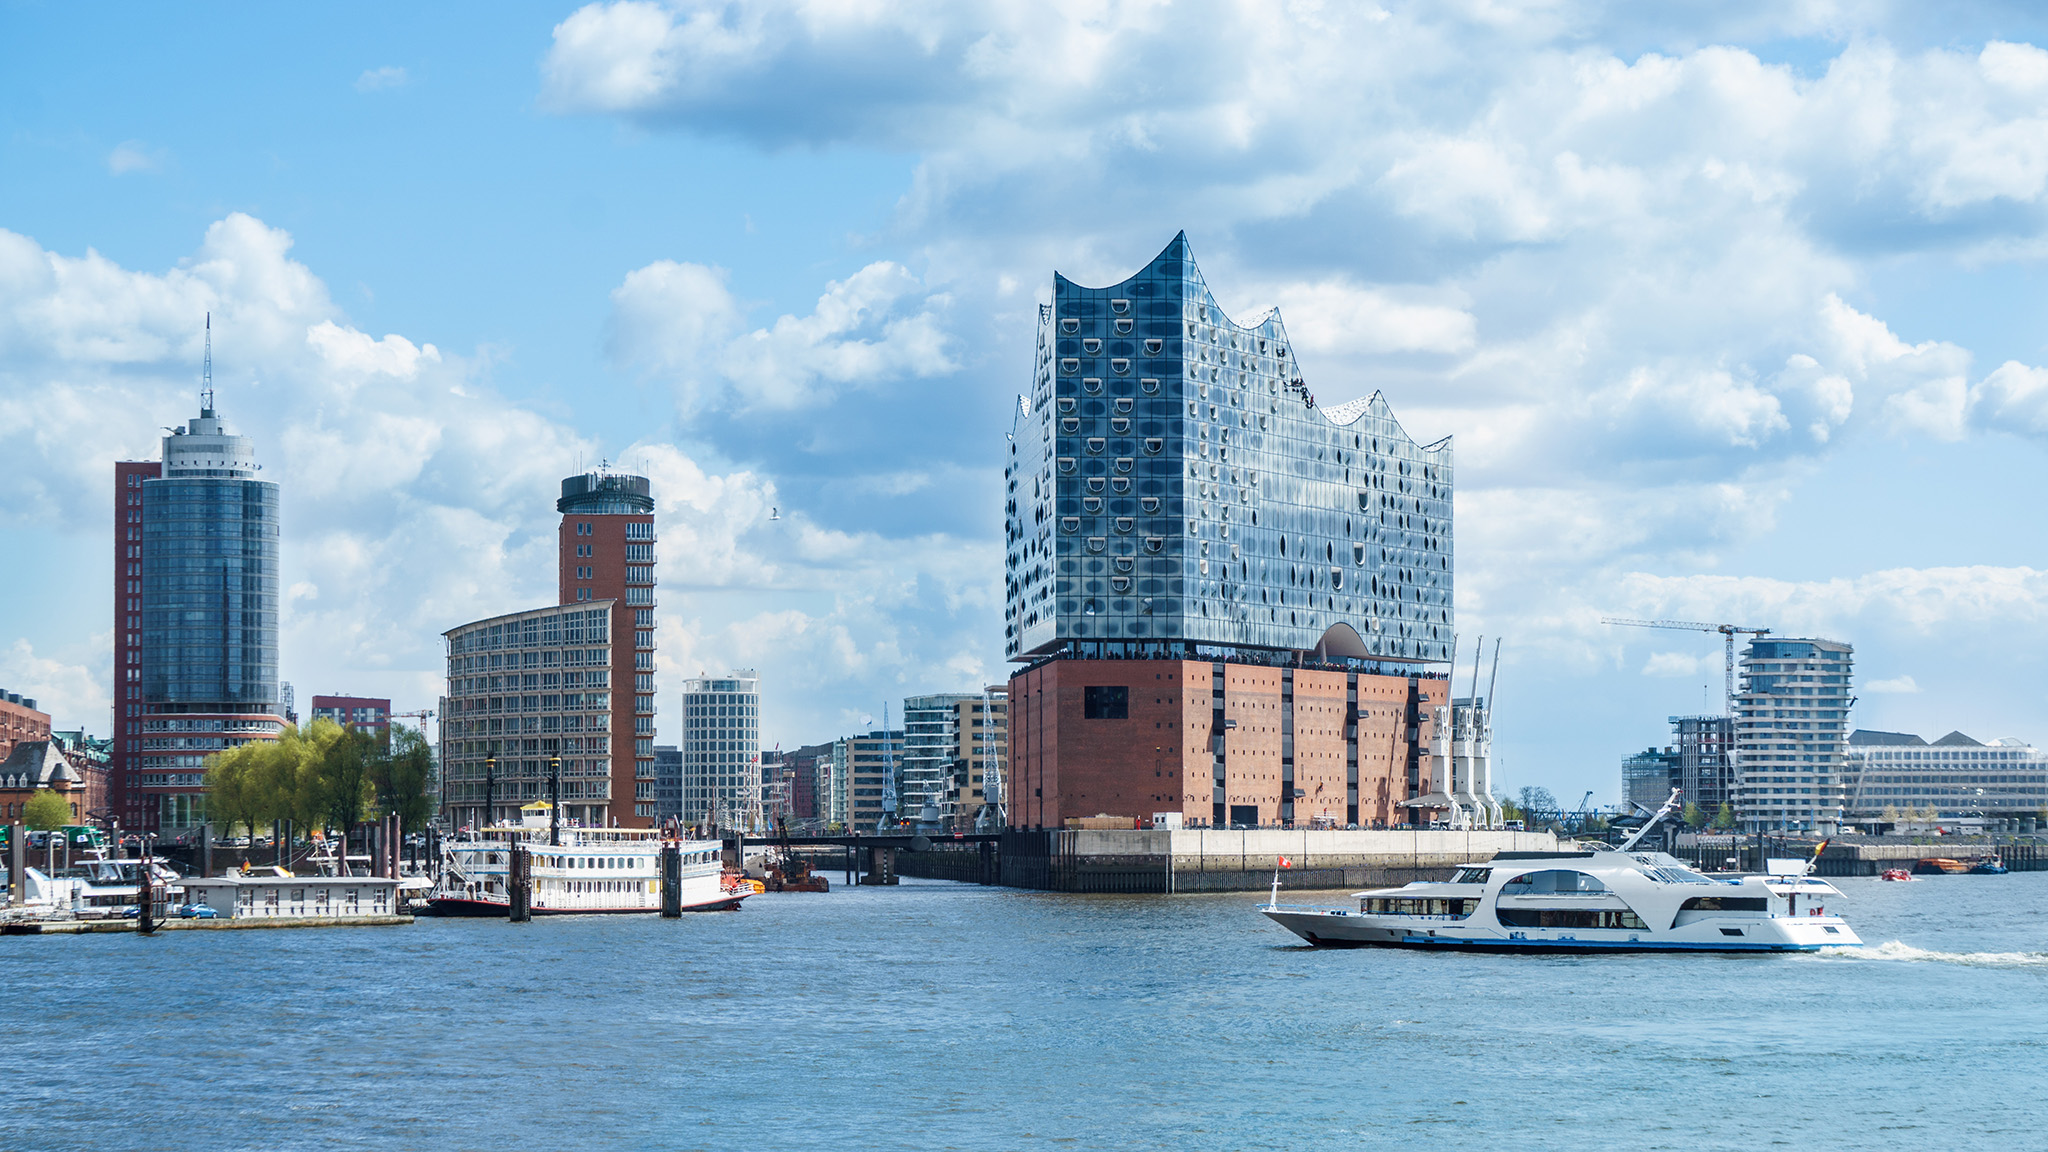 Hamburg, elbphilharmonie and modern buildings with boat to the harbor tour; Shutterstock ID 641329339